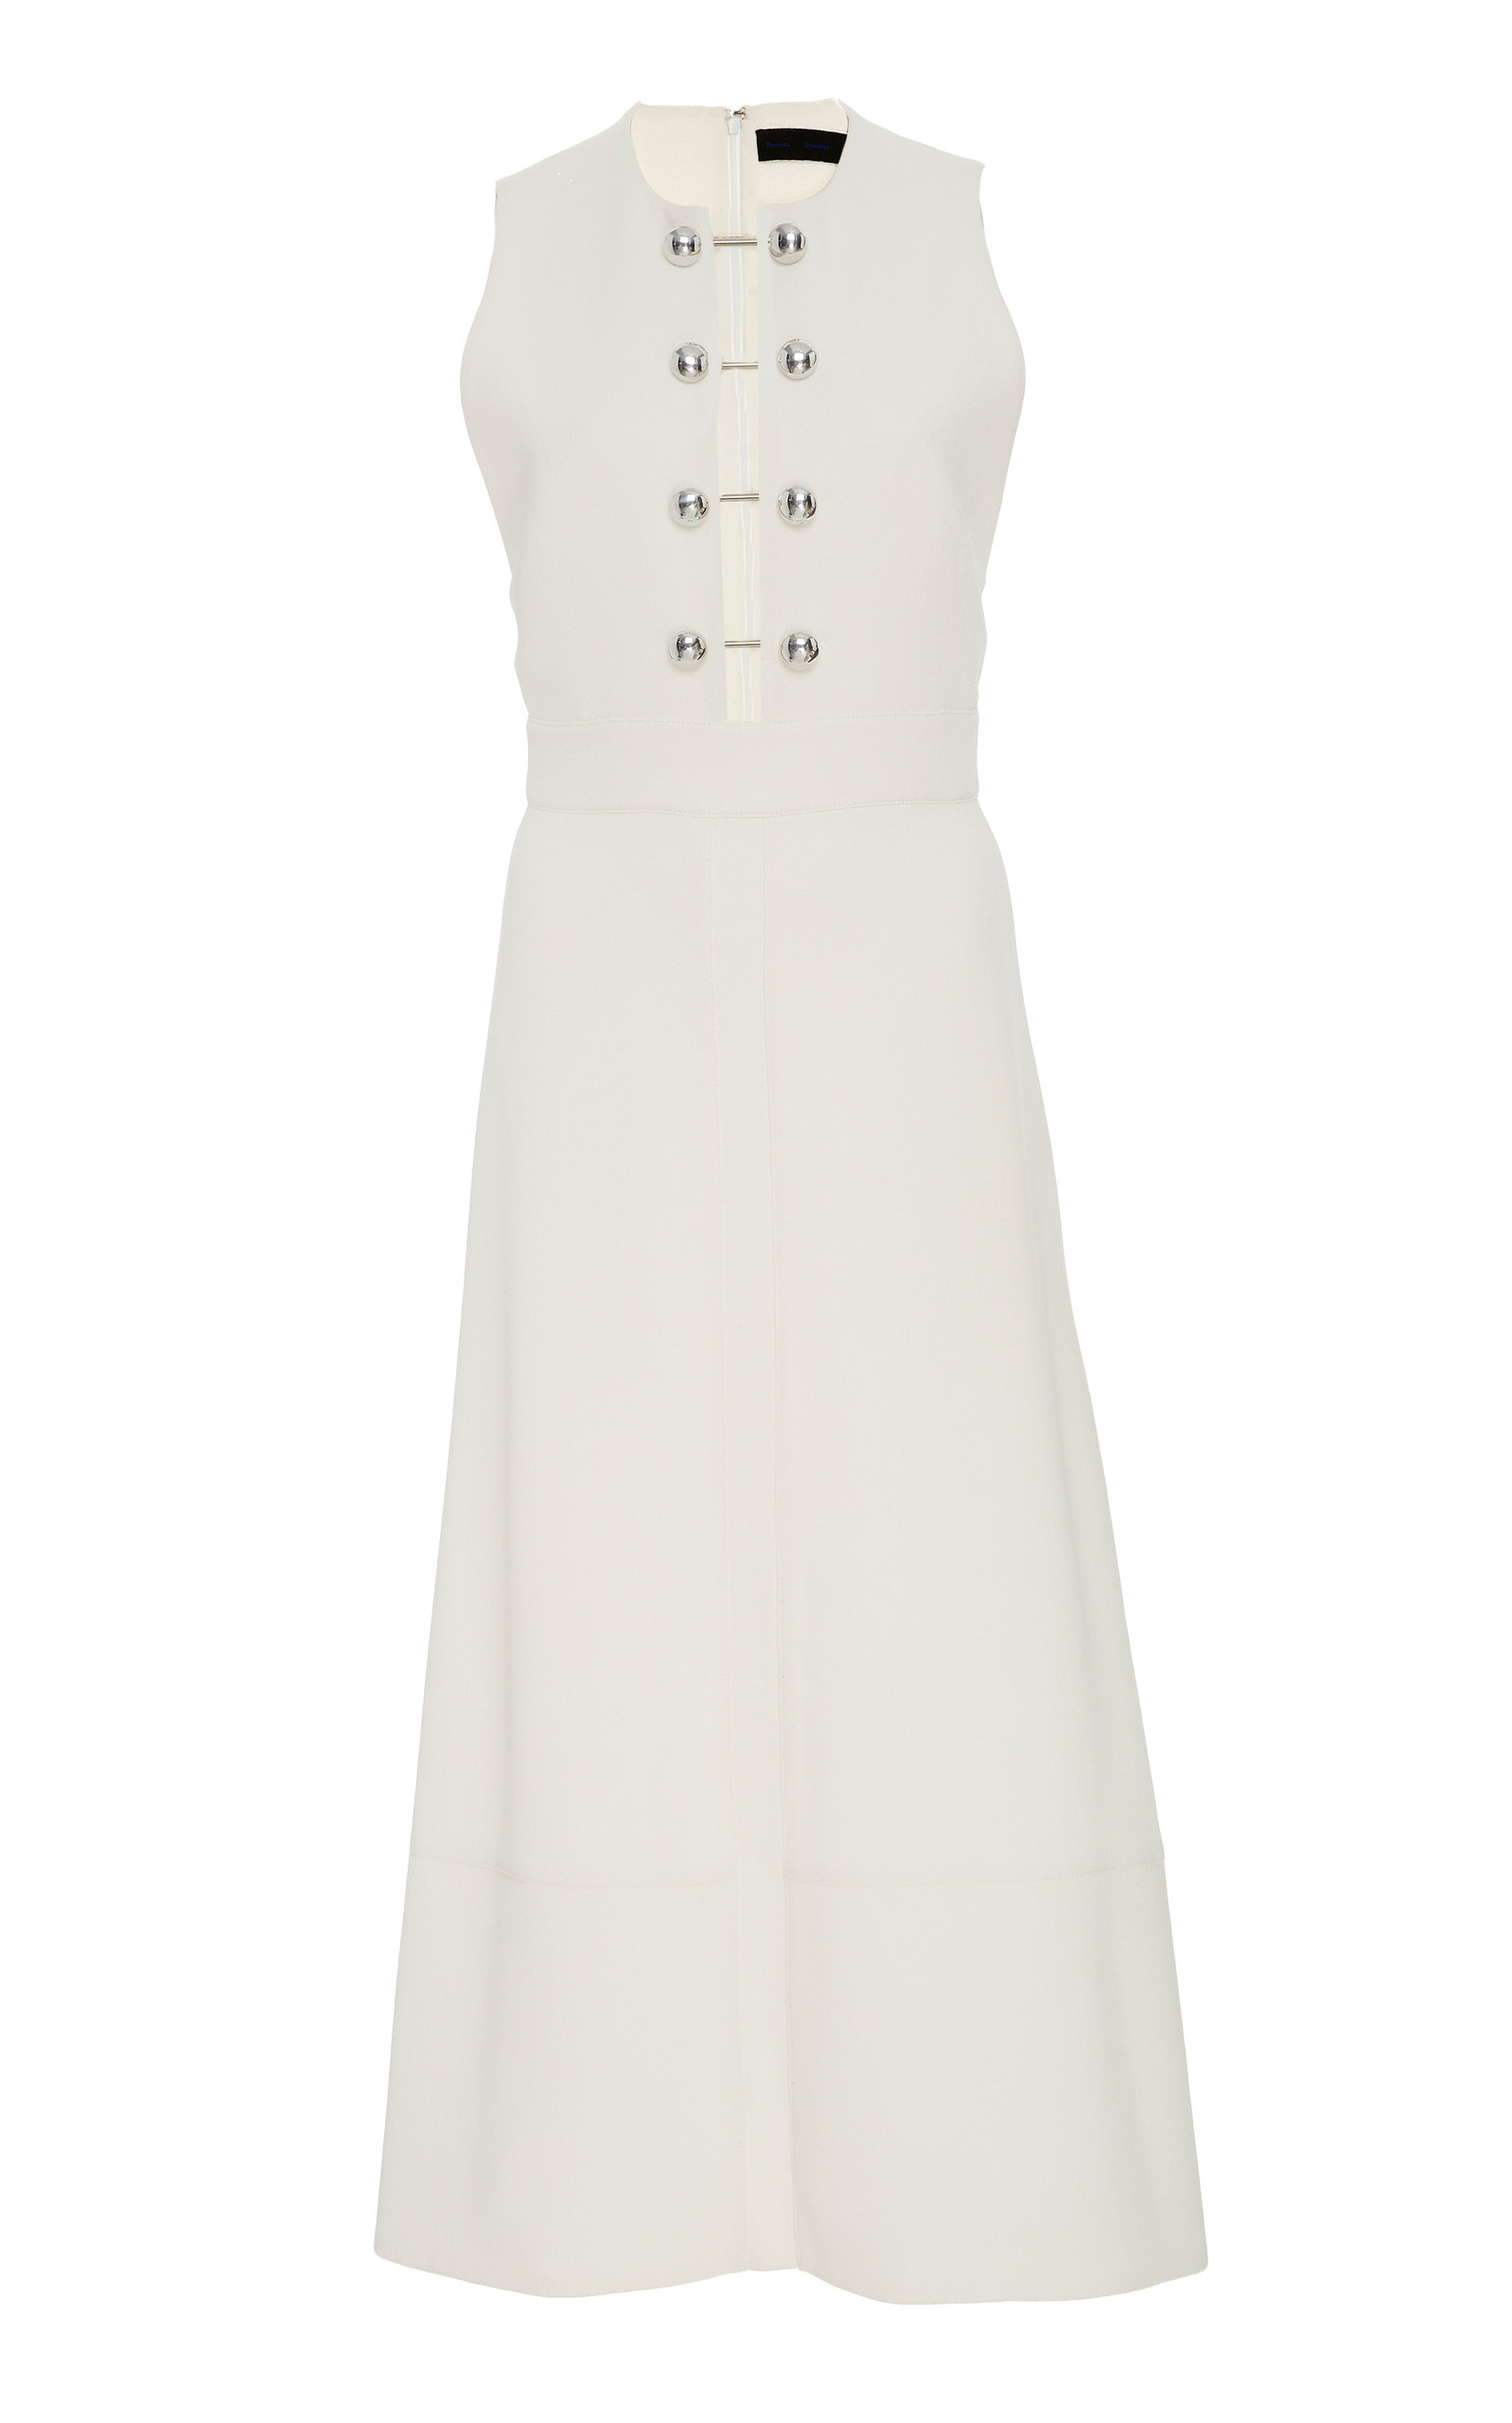 Buy Proenza Schouler Embellished Cut-Out Crepe Midi Dress online, shop Proenza Schouler at the best price